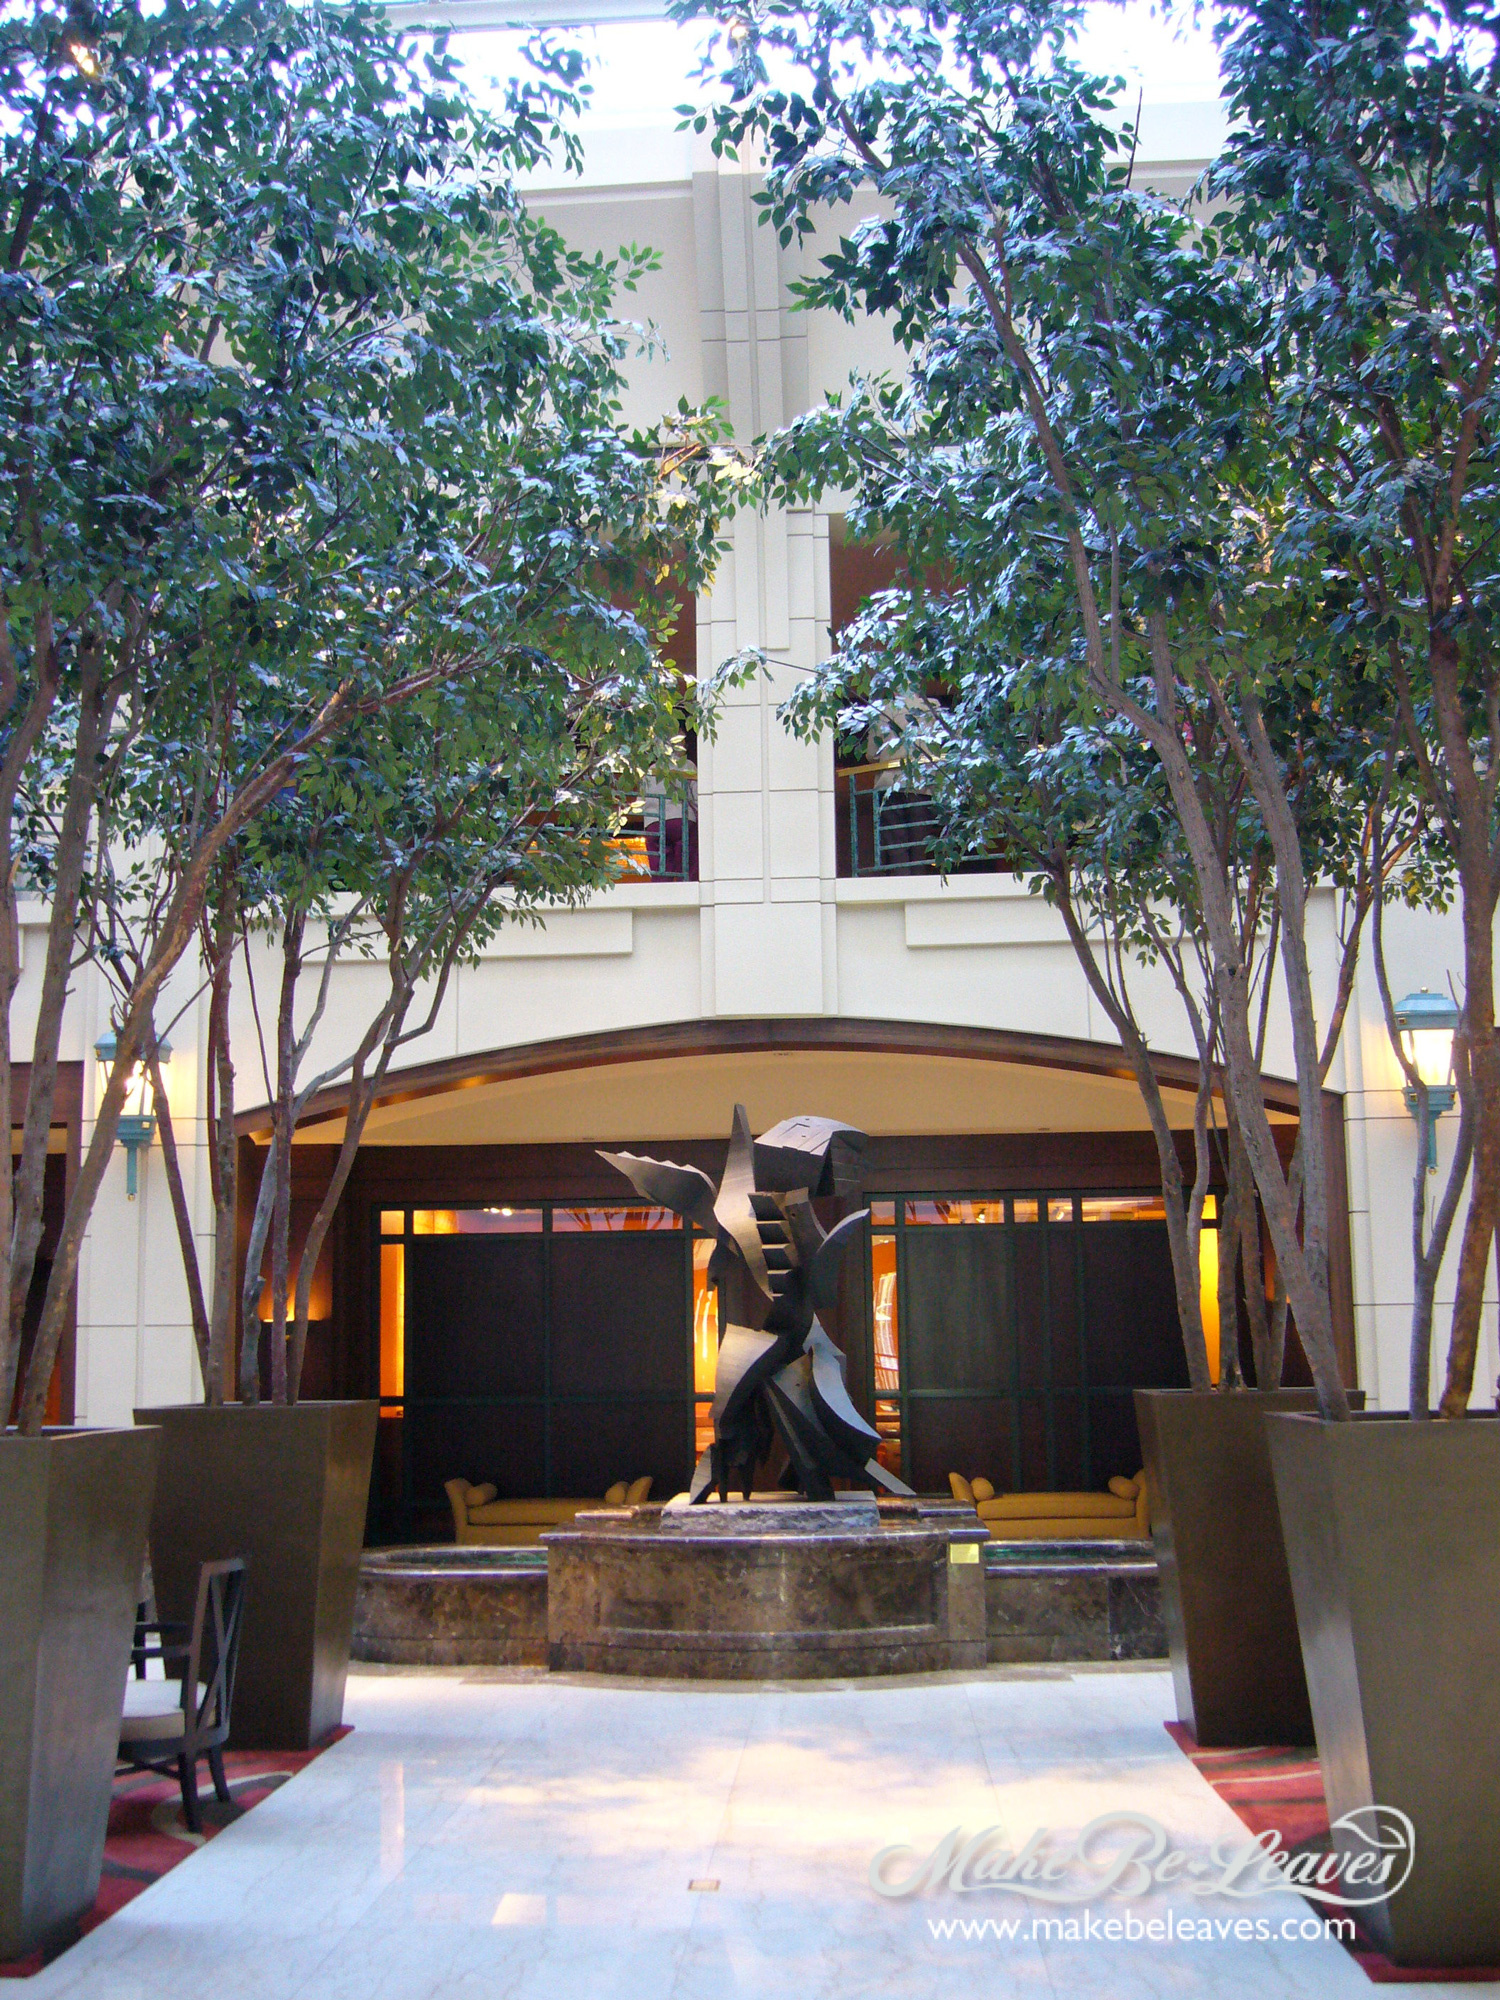 Make be-leaves artificial 23ft Ficus trees for hotel lobby